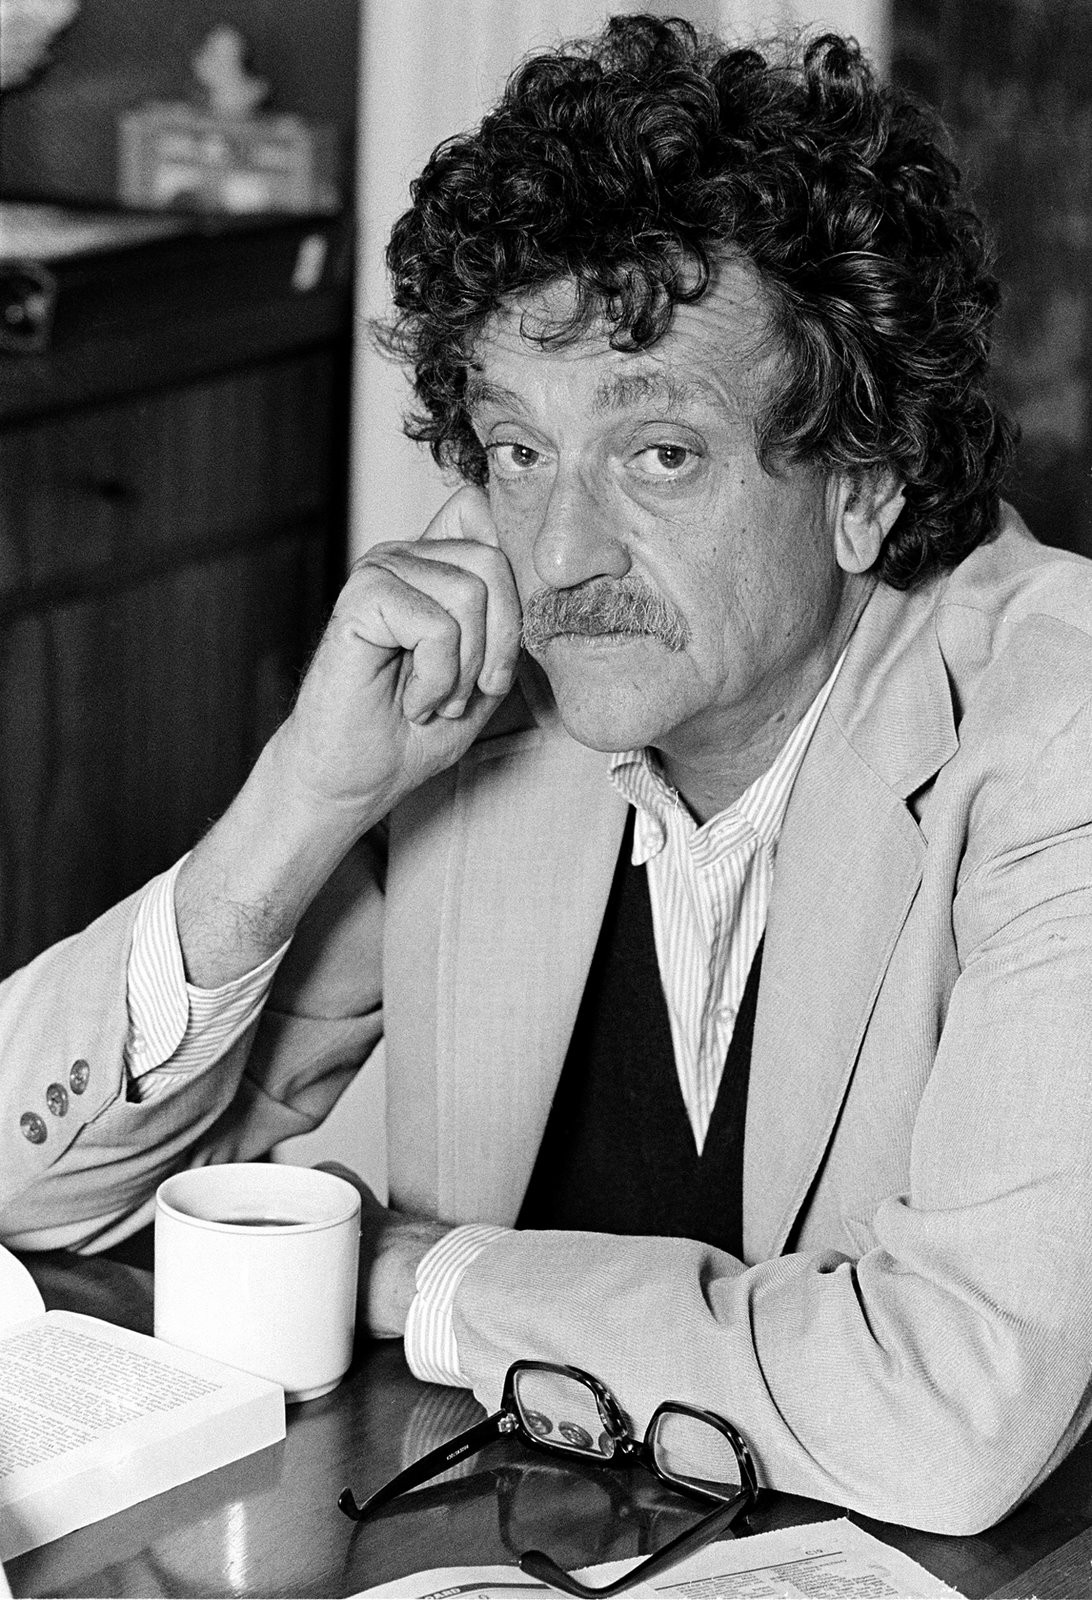 the life and writings of kurt vonnegut Kurt vonnegut biography kurt vonnegut was a famous american novelist and essayist go through this biography to know details about his life, career, works and timeline.